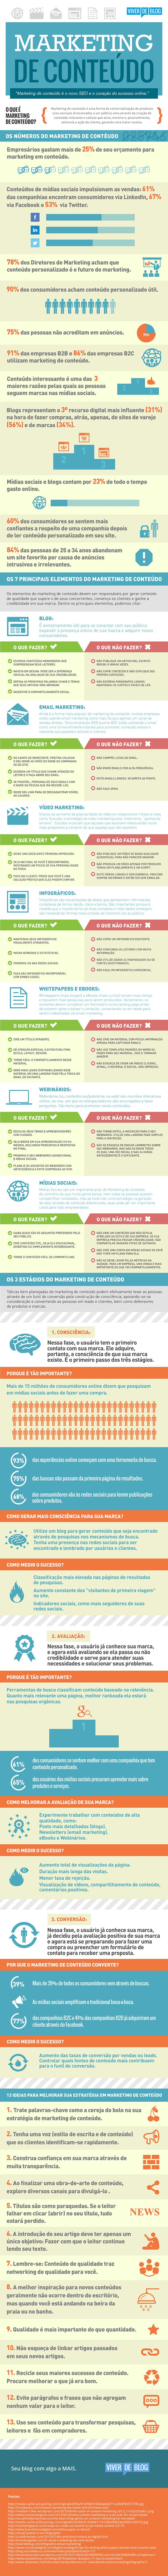 Marketing de Conteúdo. By: Viver de Blog